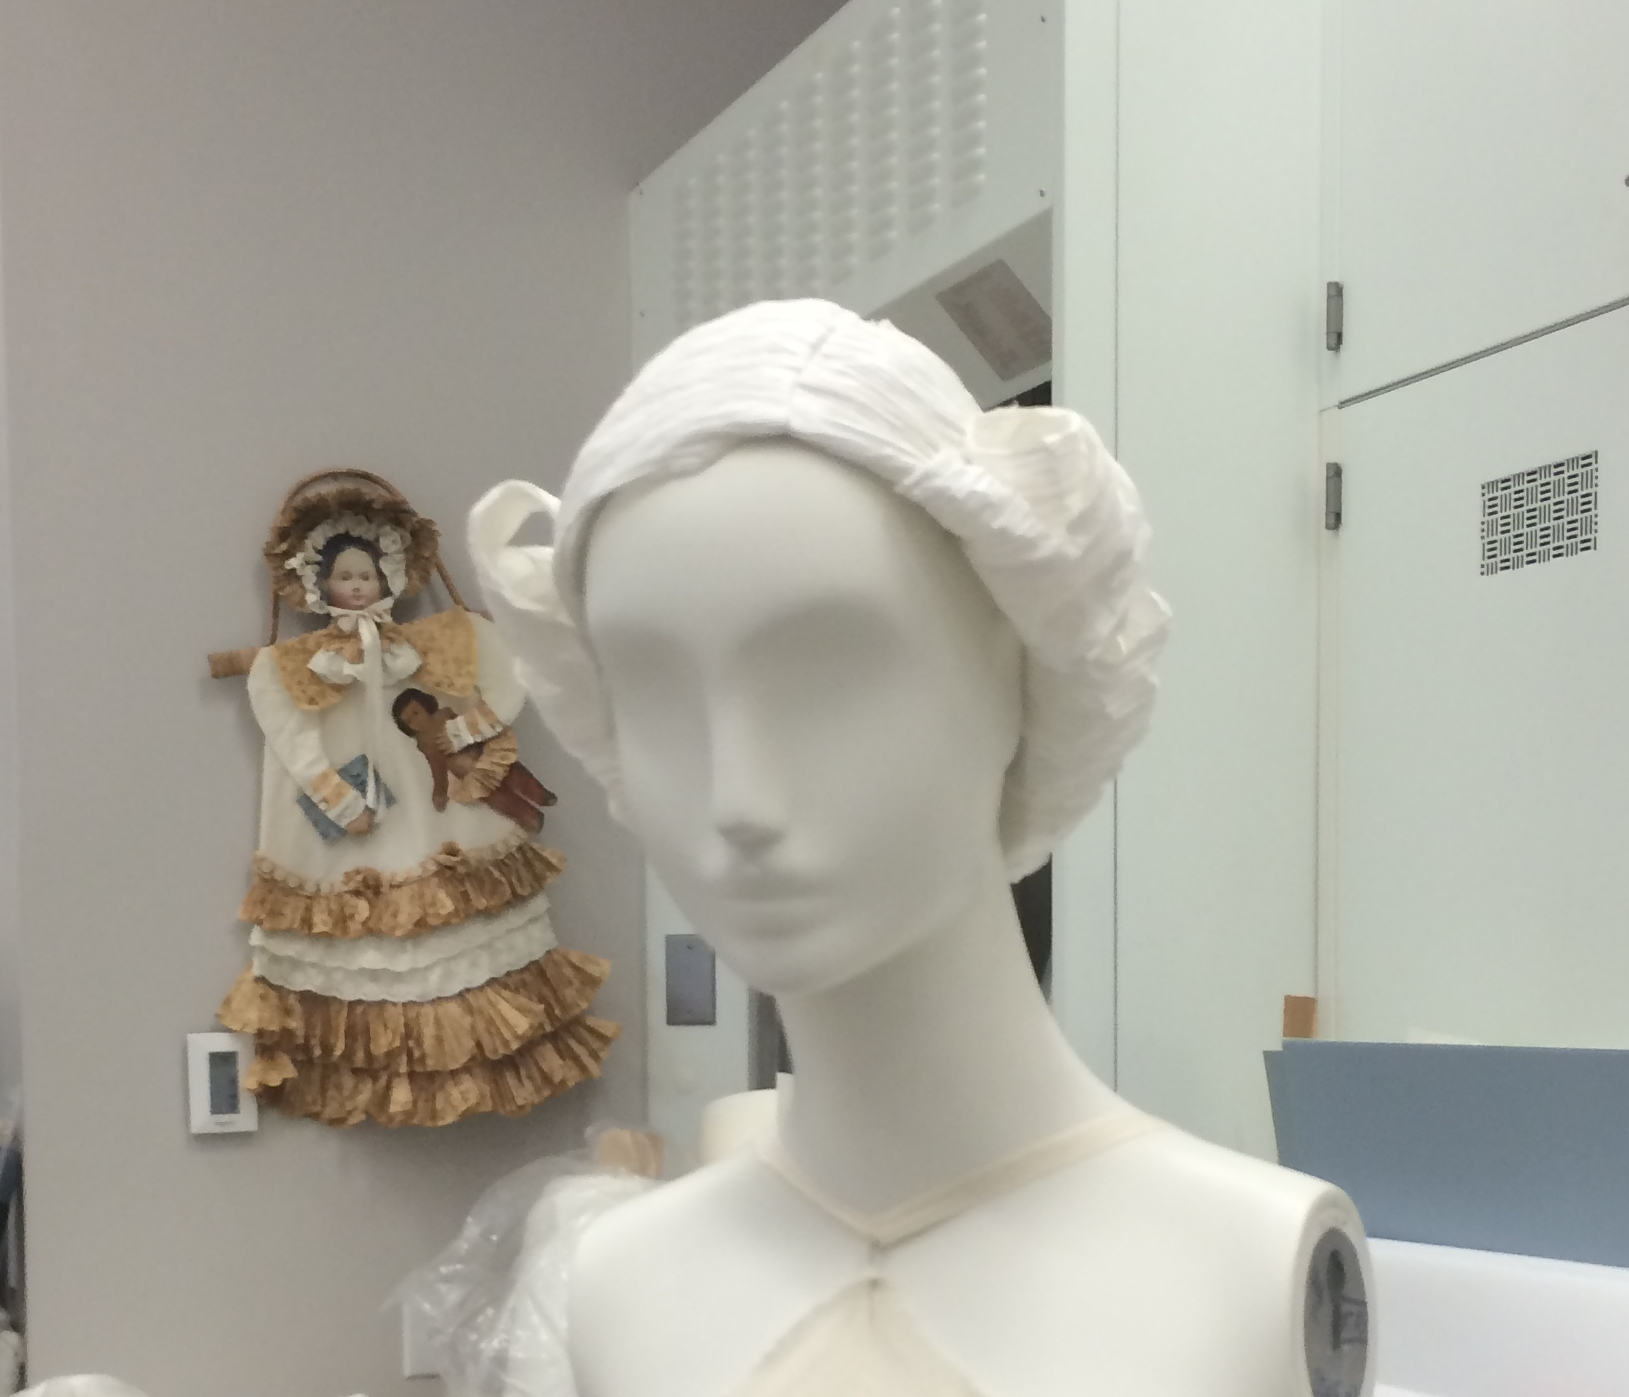 The museum had custom paper wigs created for each mannequin. Each one had a different hairstyle contemporary to the dress it was paired with. They were very elaborate!